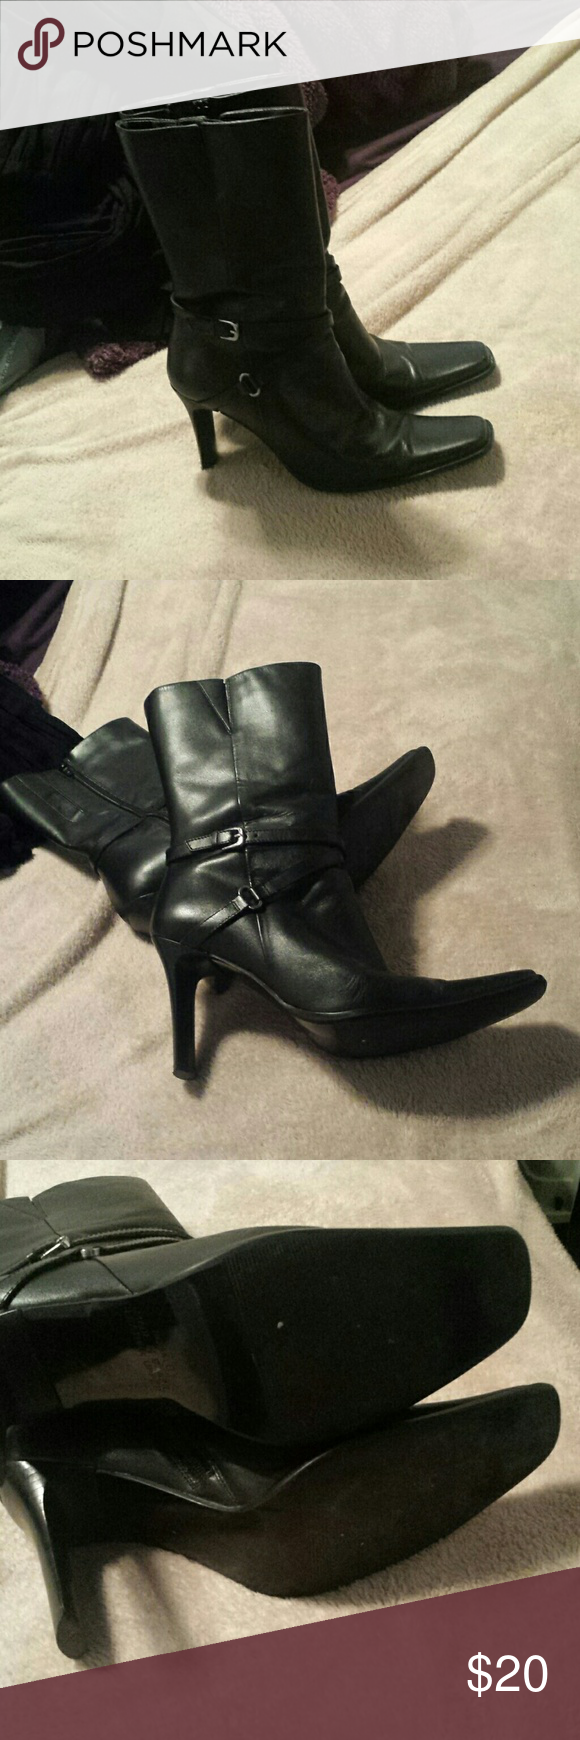 Paola Ruggeri Black Heeled Boot That Comes to Calf This black heeled boot is made by Paola Ruggeri. They are a Rona size 8. These boots have a thin square heel, with square toes, and bands with buckle for decor. These boots are in excellent condition. Paola Ruggeri  Shoes Heeled Boots